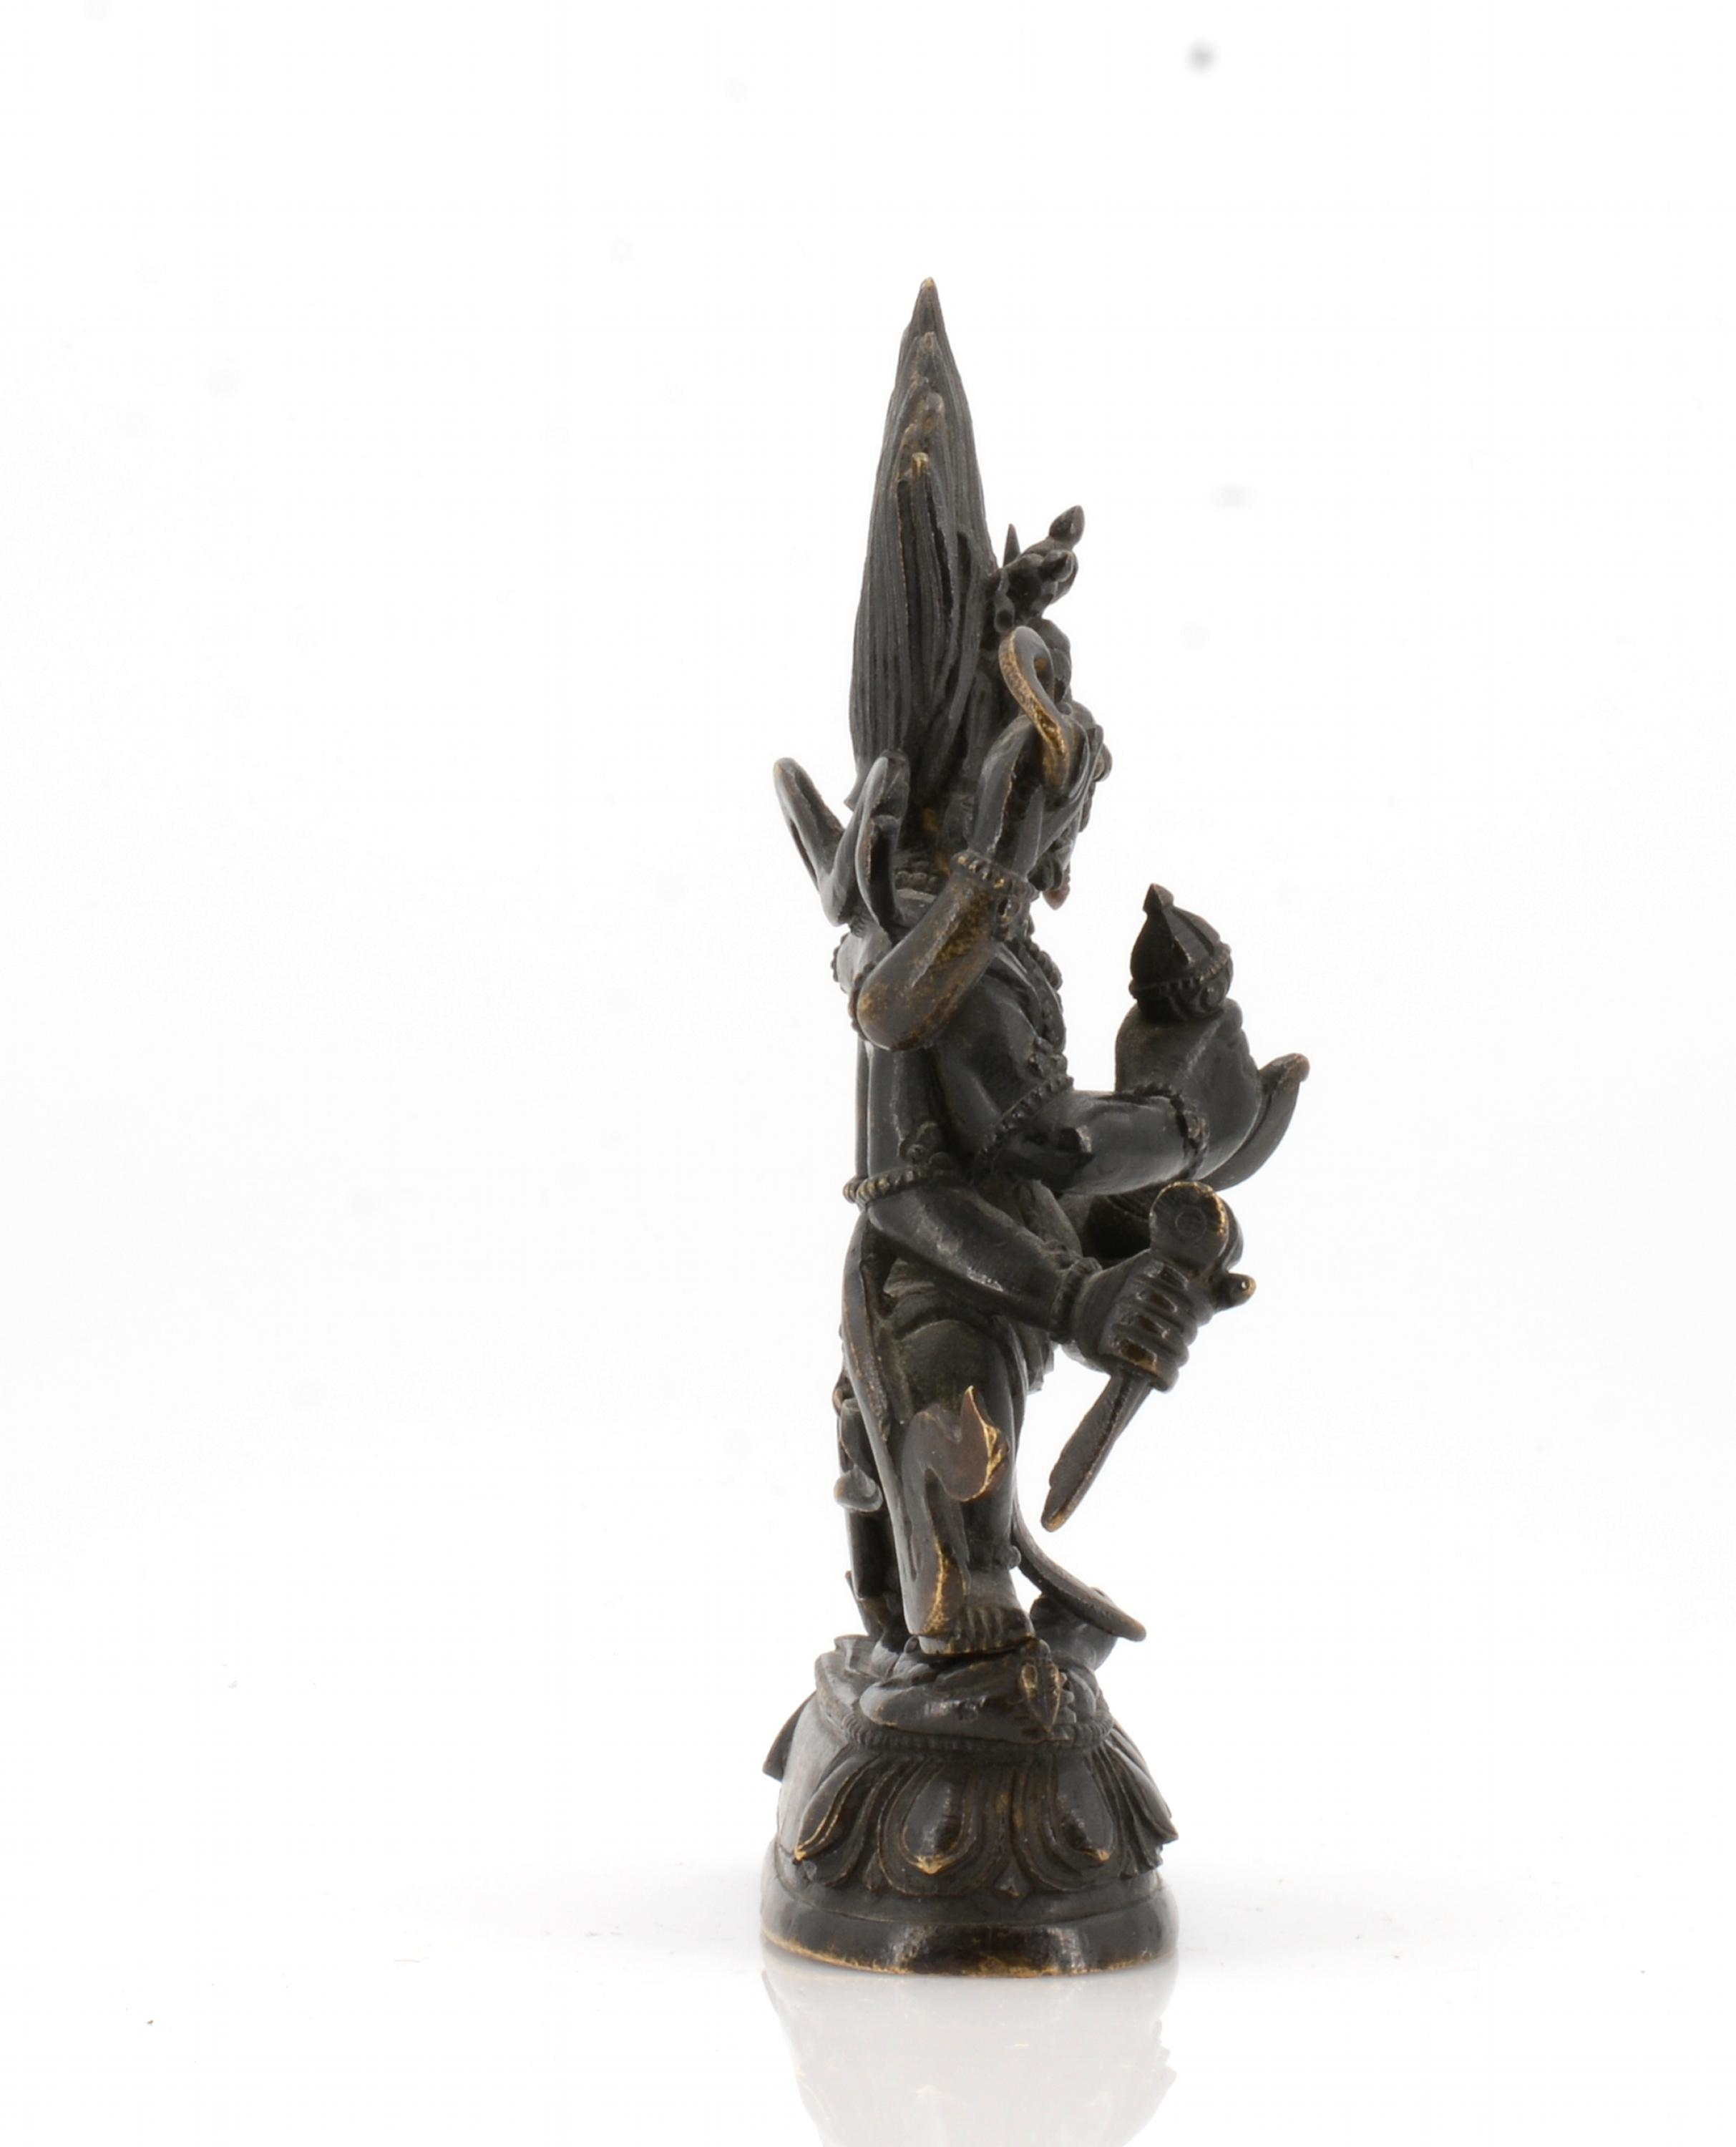 Lot 40 - Title: Sadbhuja Mahakala. Origin: Tibet. Measurement: Weight 520g. Height 13.4. Description: